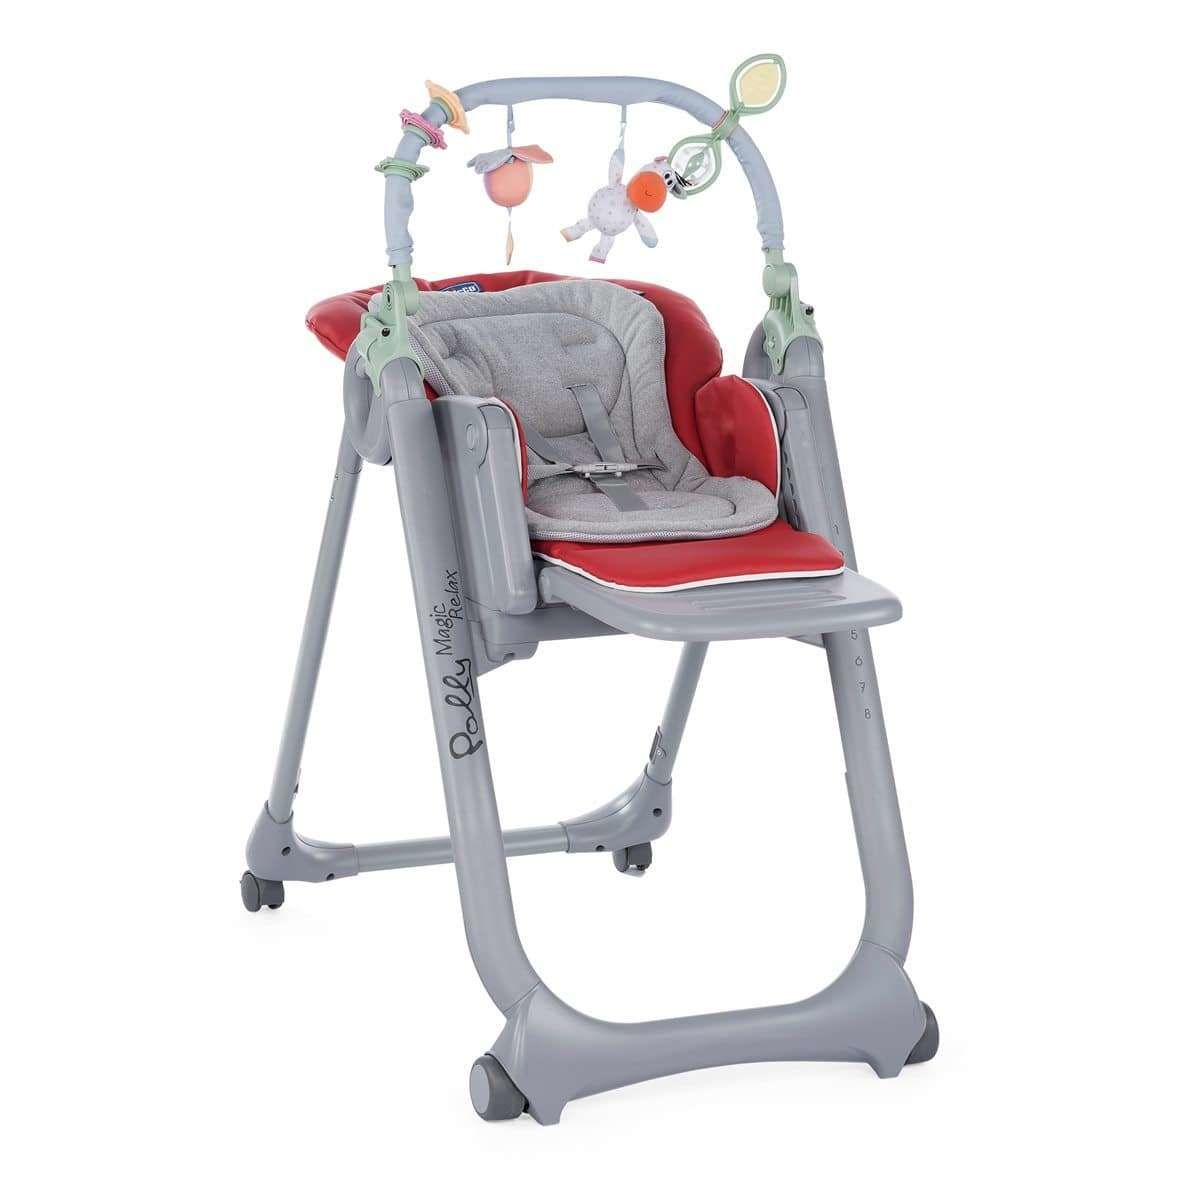 Chaise haute bébé Polly Magic Relax  Repas  Chicco.fr